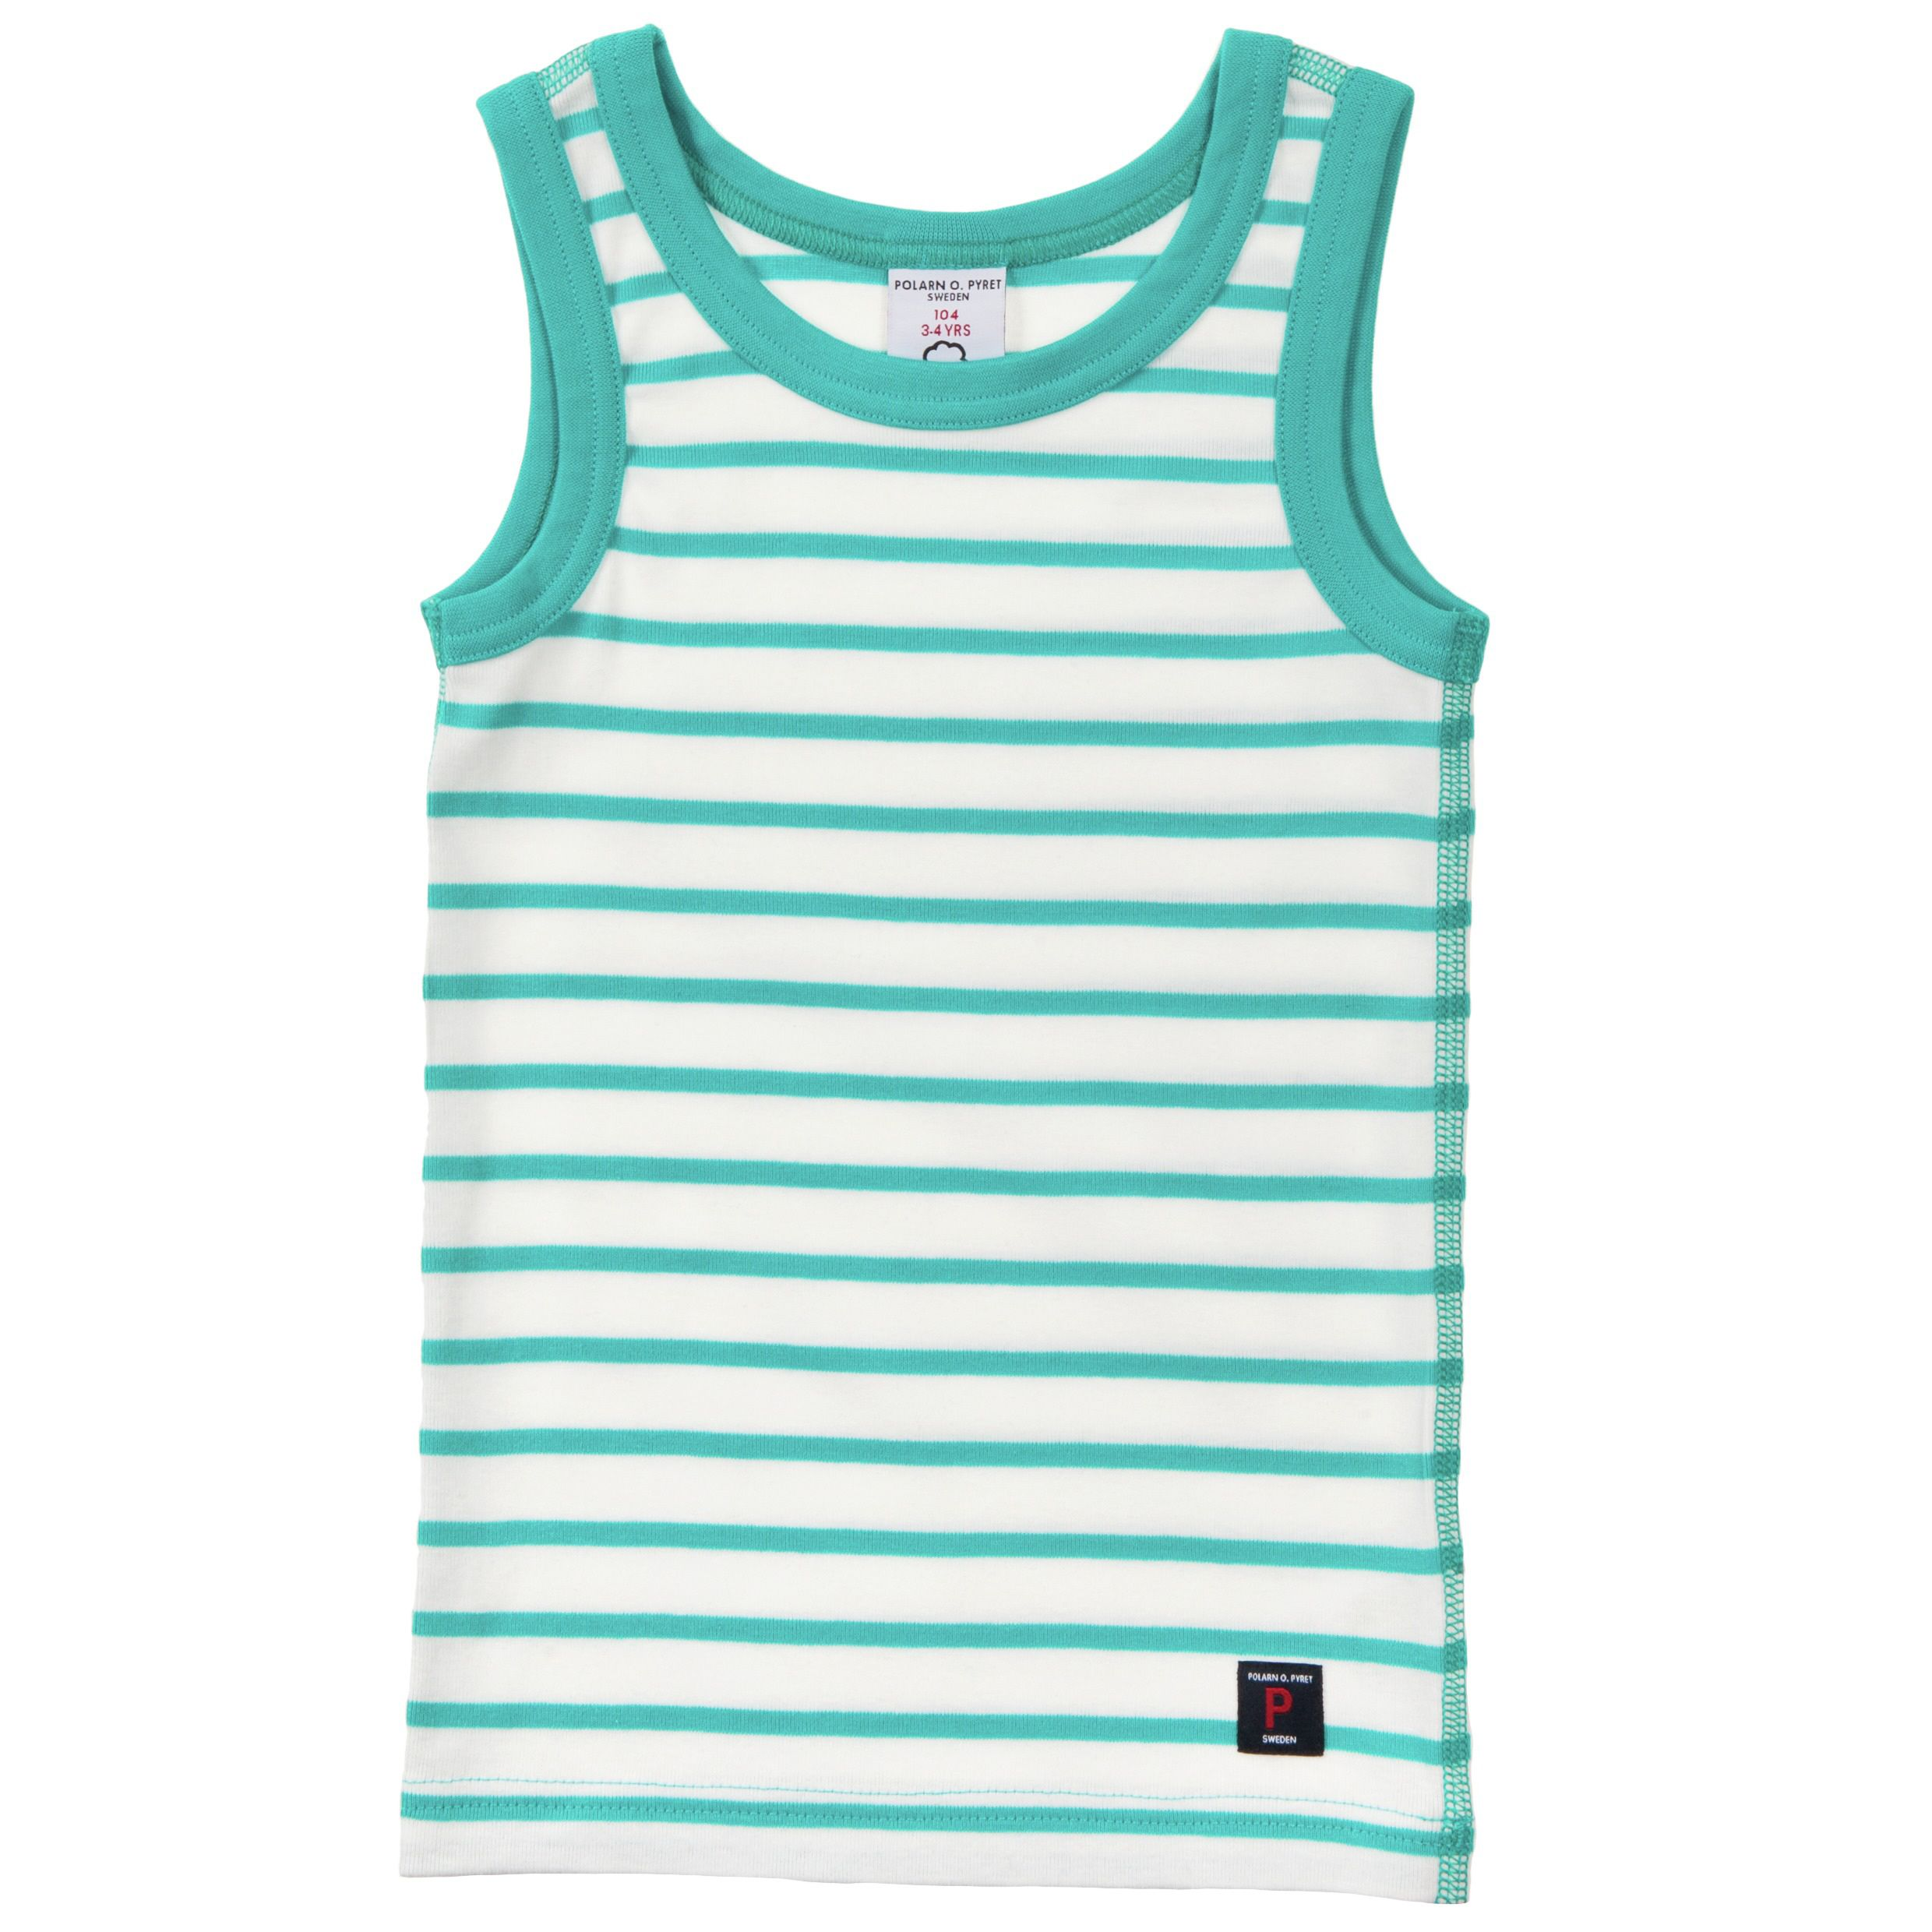 Kids stripe vest top